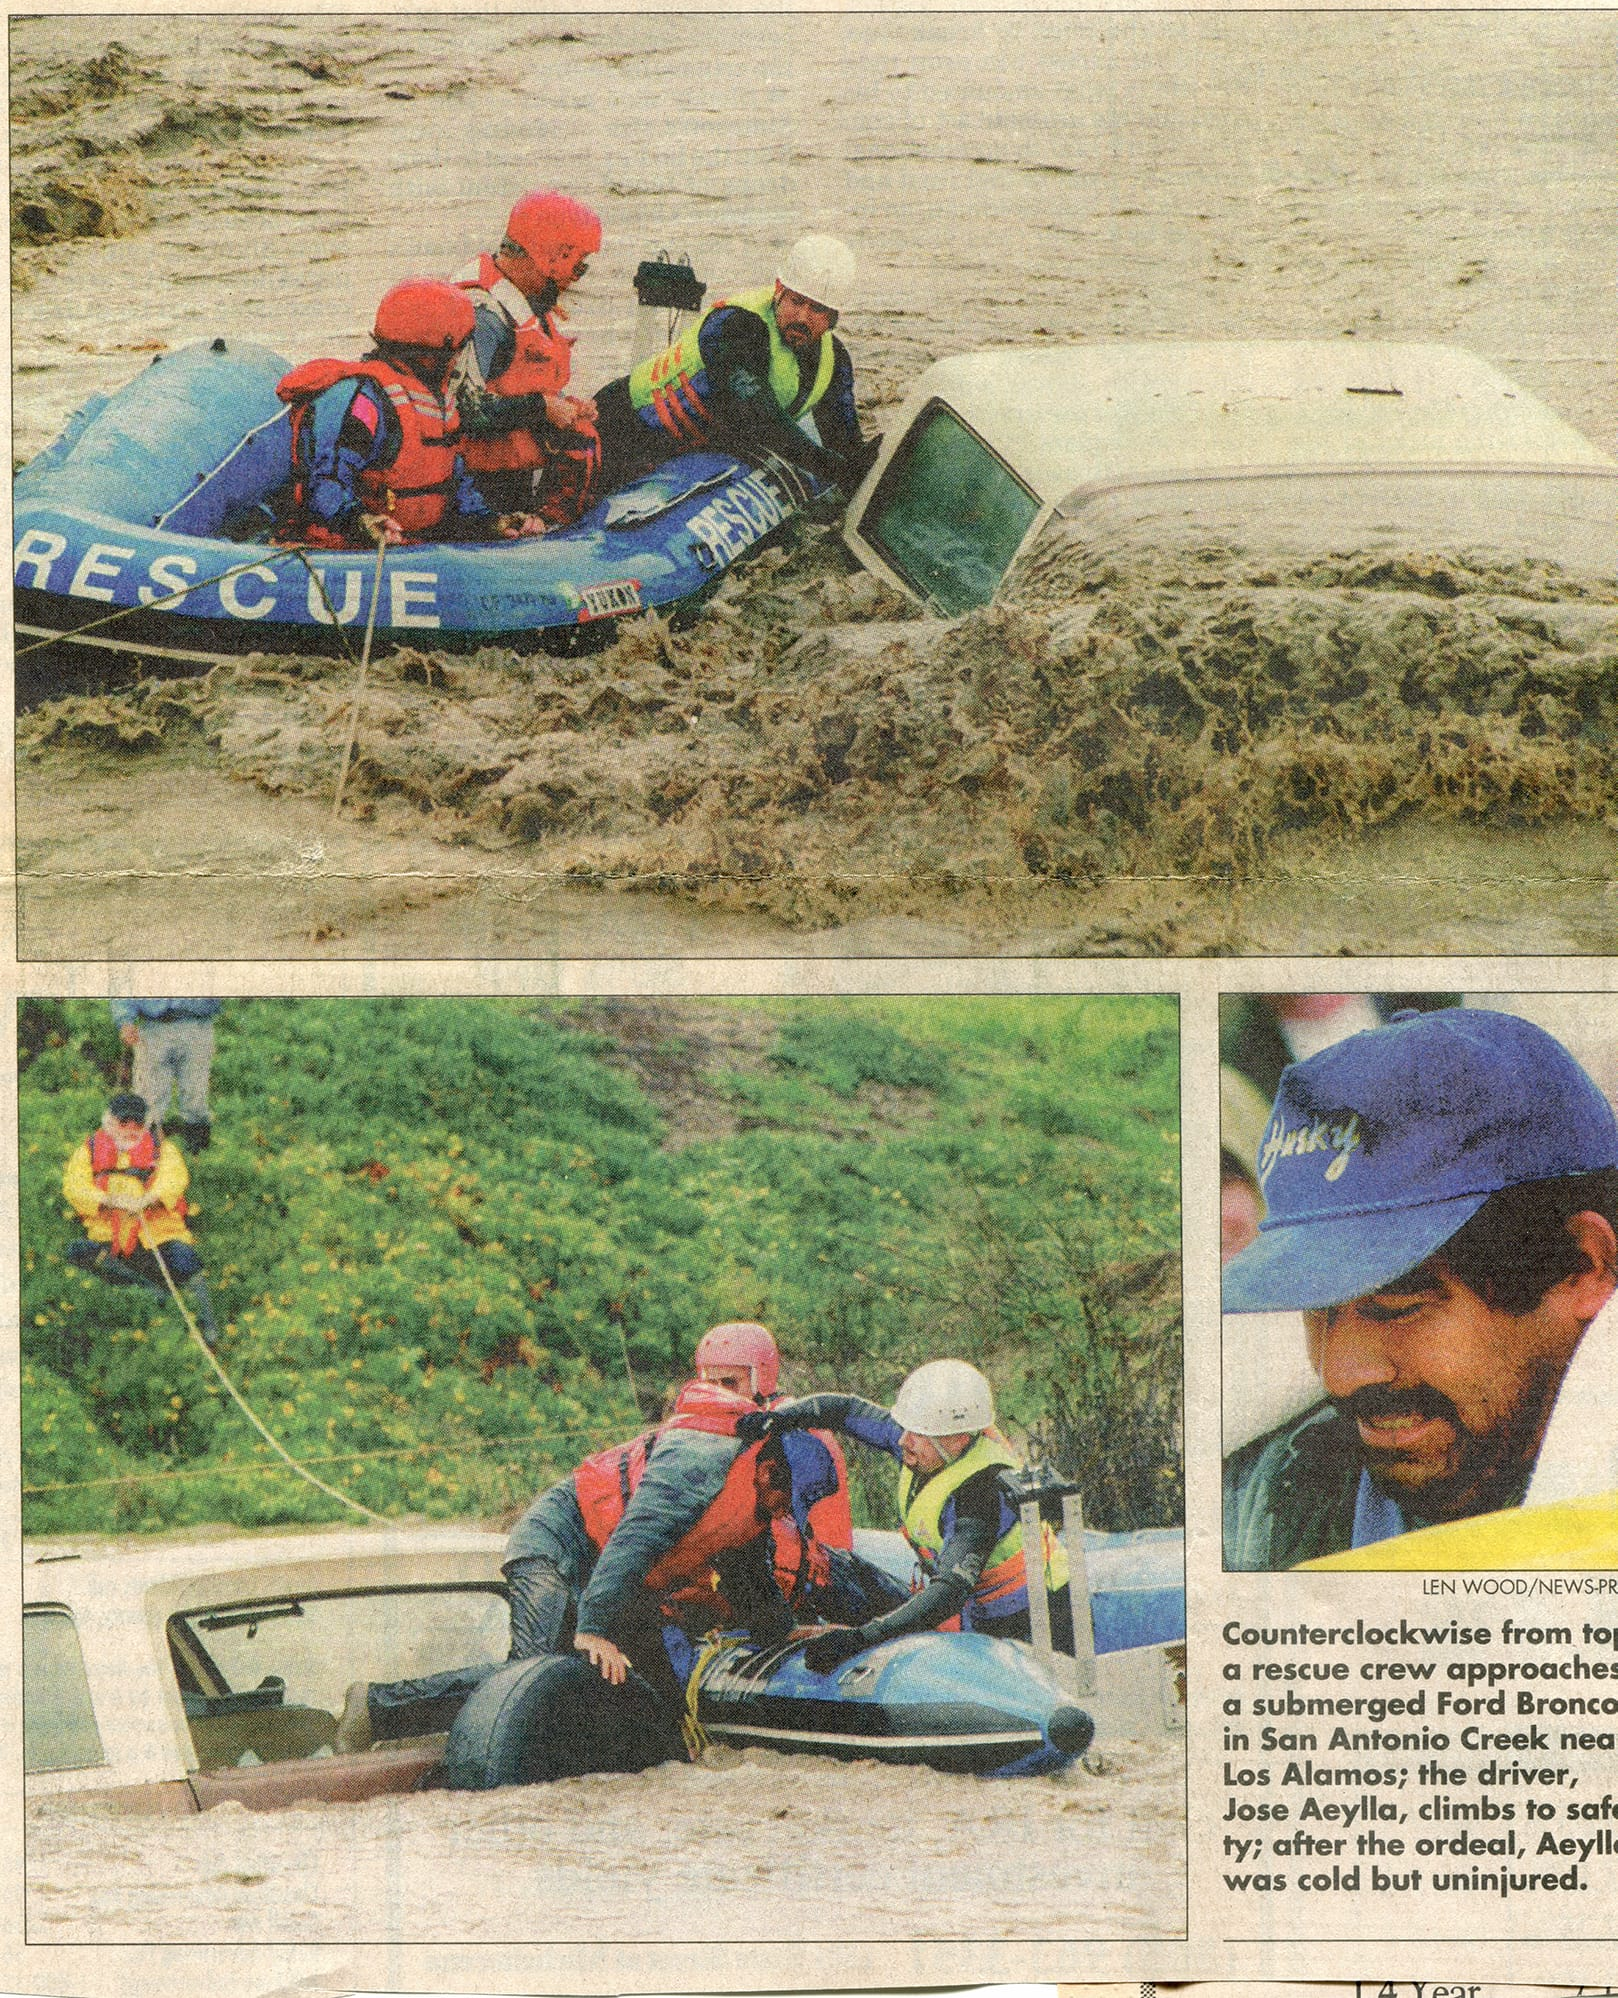 Flood rescue, January 25, 1995